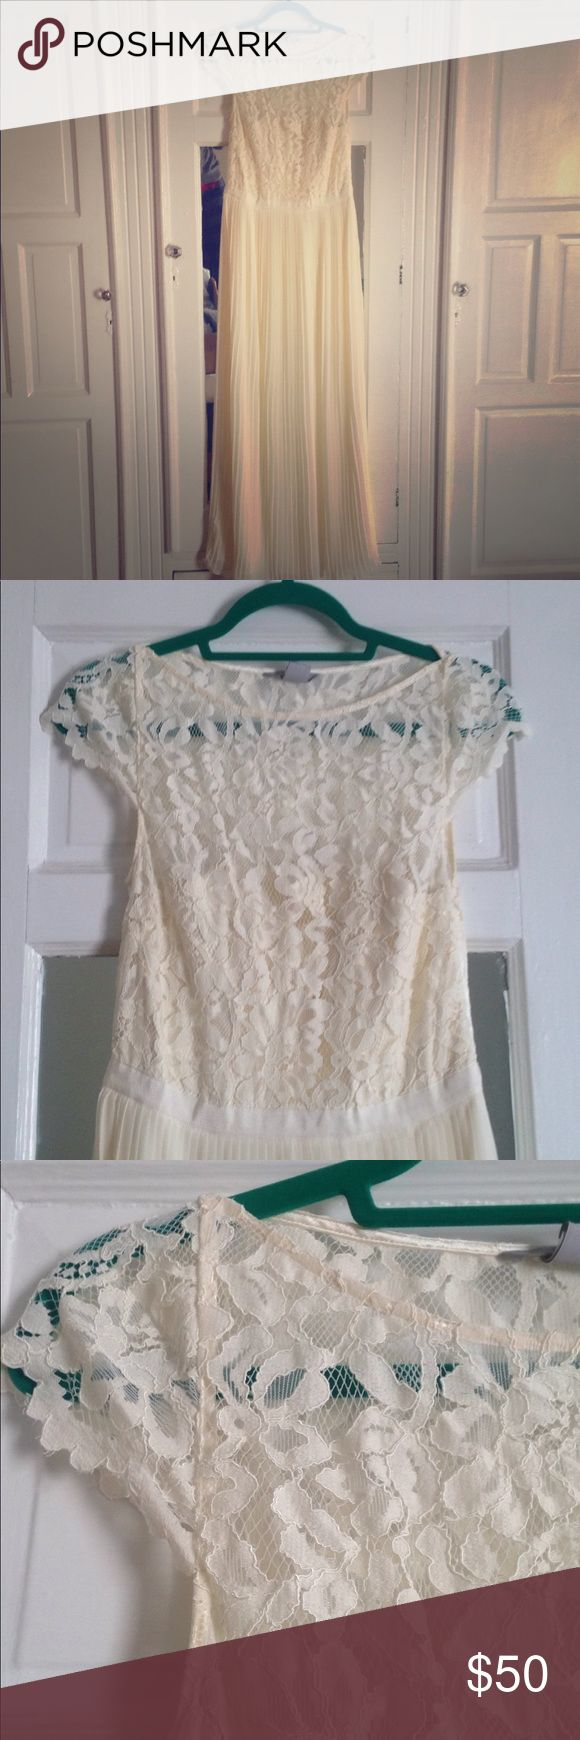 H&M Ivory Maxi Dress Off-white maxi with lace top and pleated skirt. Lace does not stretch. Grosgrain ribbon at waist. Side zip. Both skirt and top are fully lined. Perfect for a casual wedding or bridesmaid dress! H&M Dresses Wedding